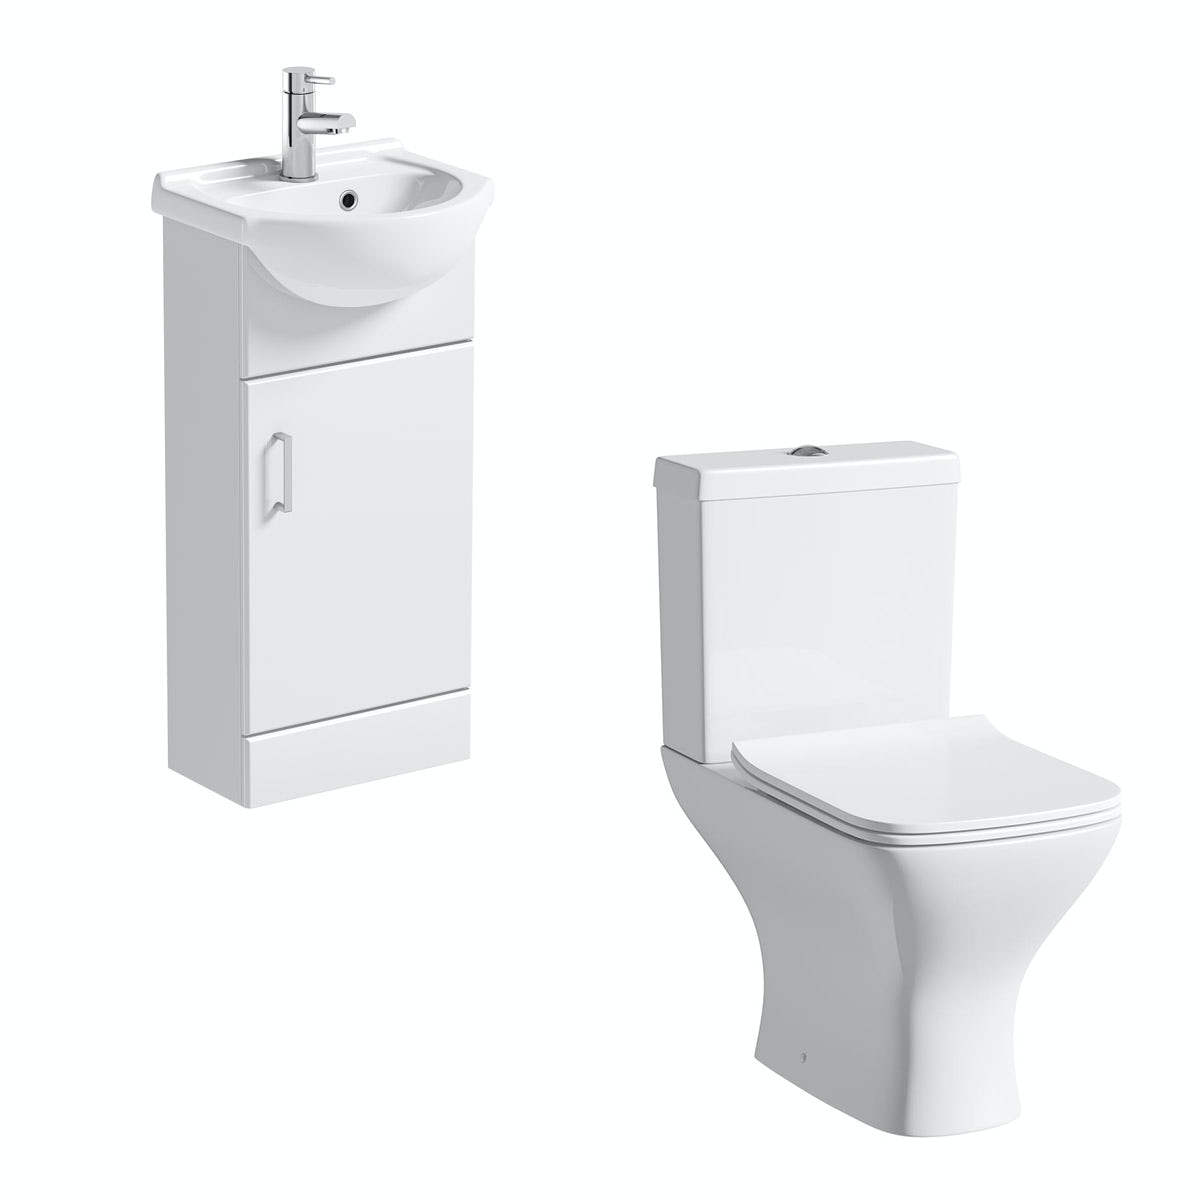 Orchard Eden white cloakroom suite with contemporary square close coupled toilet